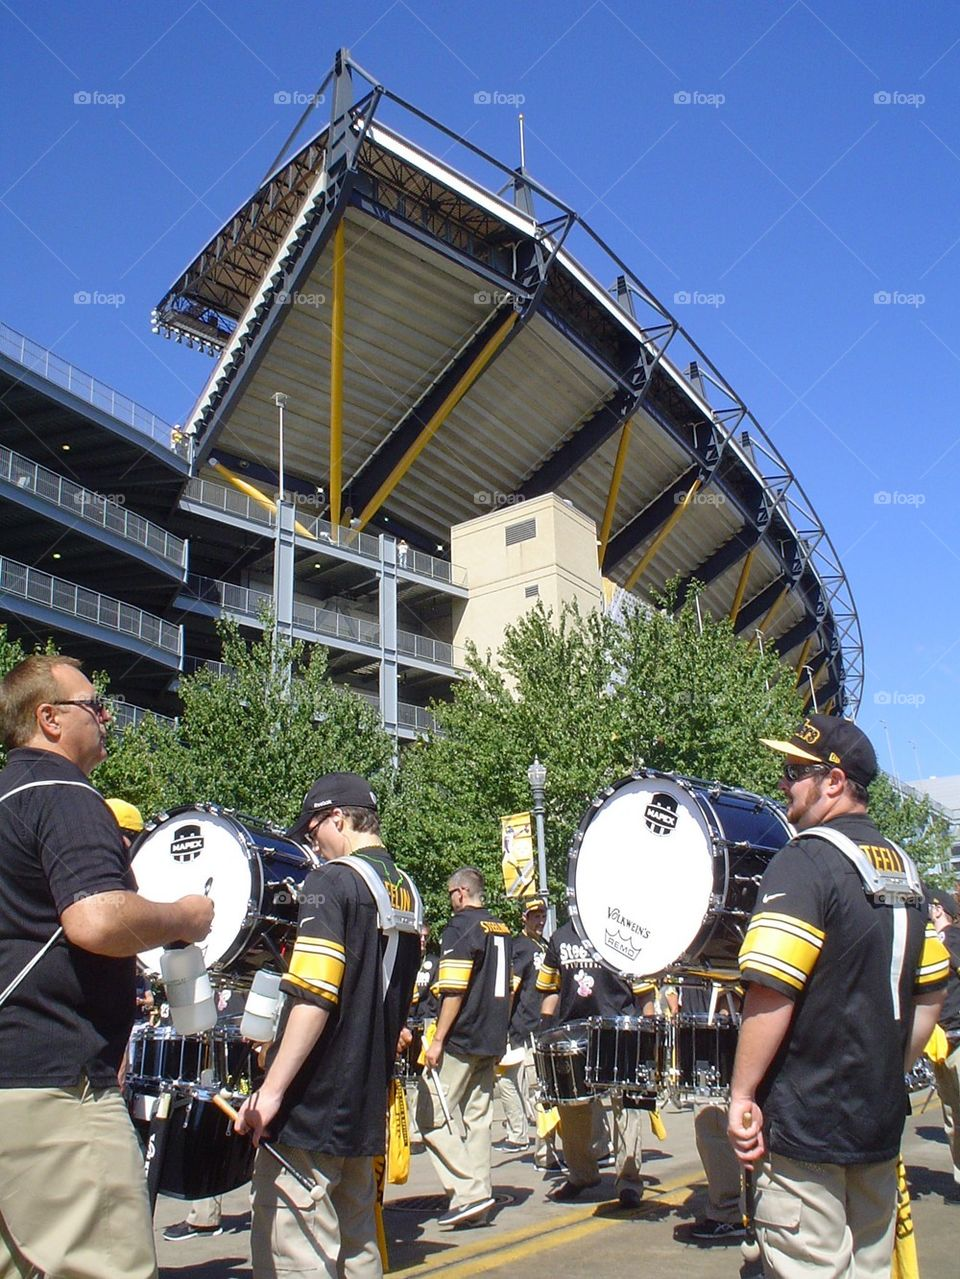 Steelers band